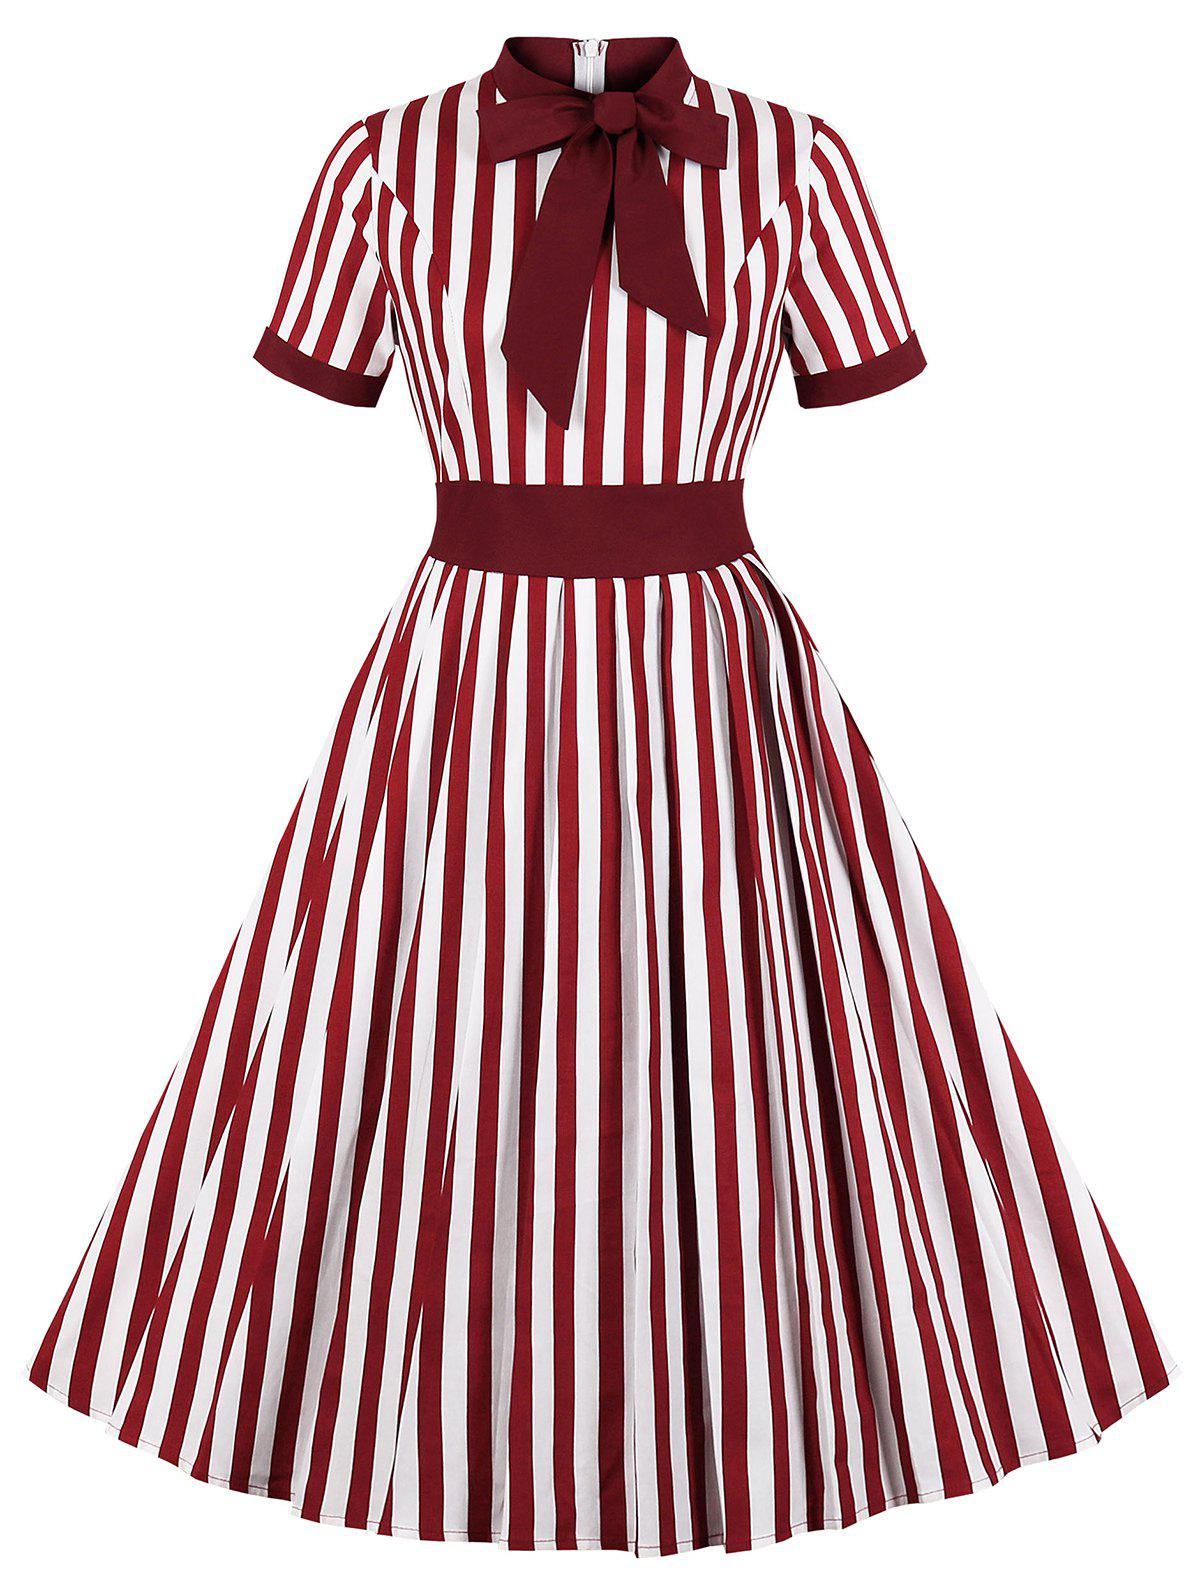 Best Tie Knot Striped Print Vintage Flare Dress